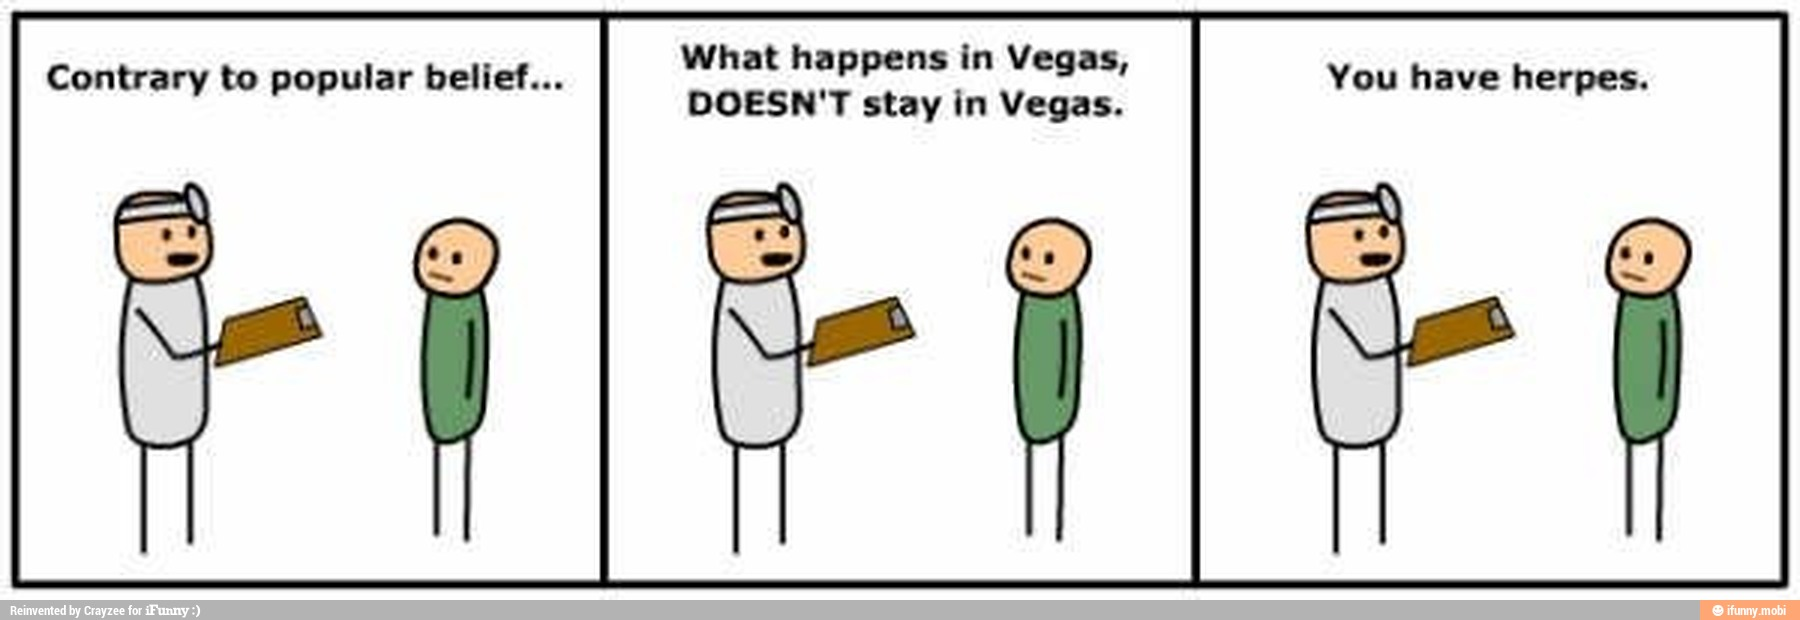 What Happens In Vegas Lief You Have Herpes Contrary To